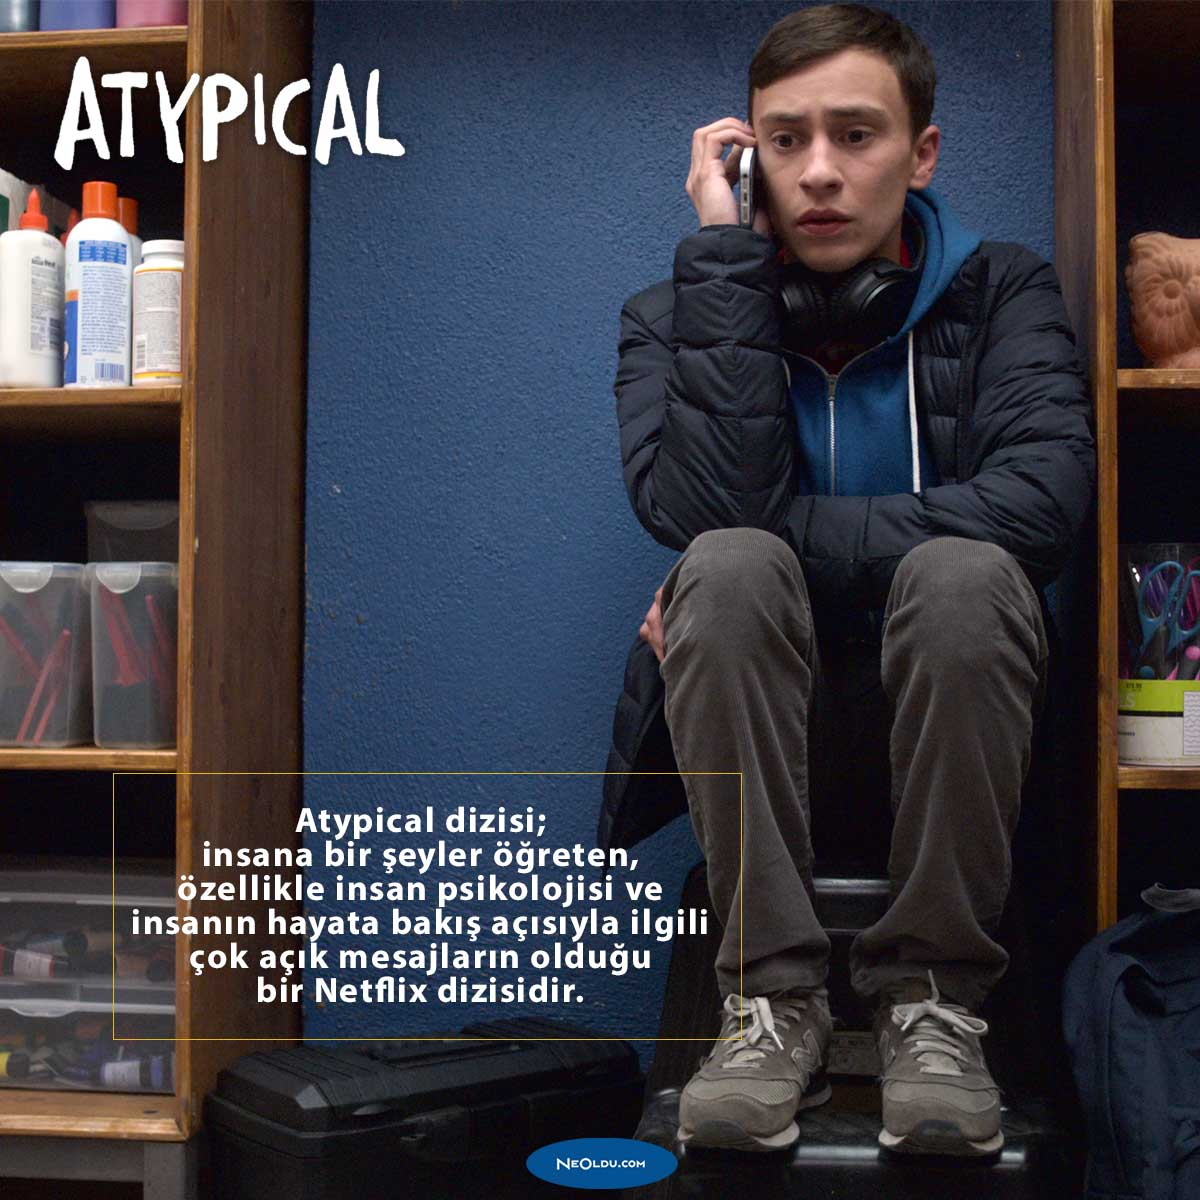 atypical-dizisi.jpg